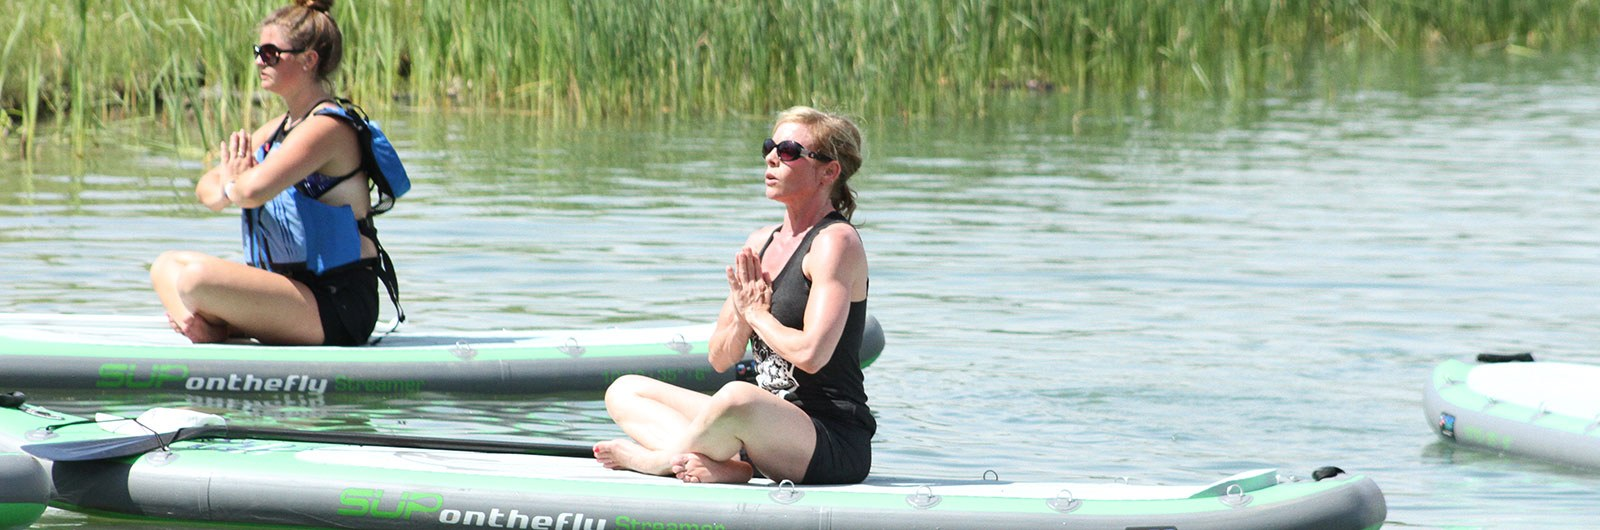 women practicing yoga on standup paddleboards